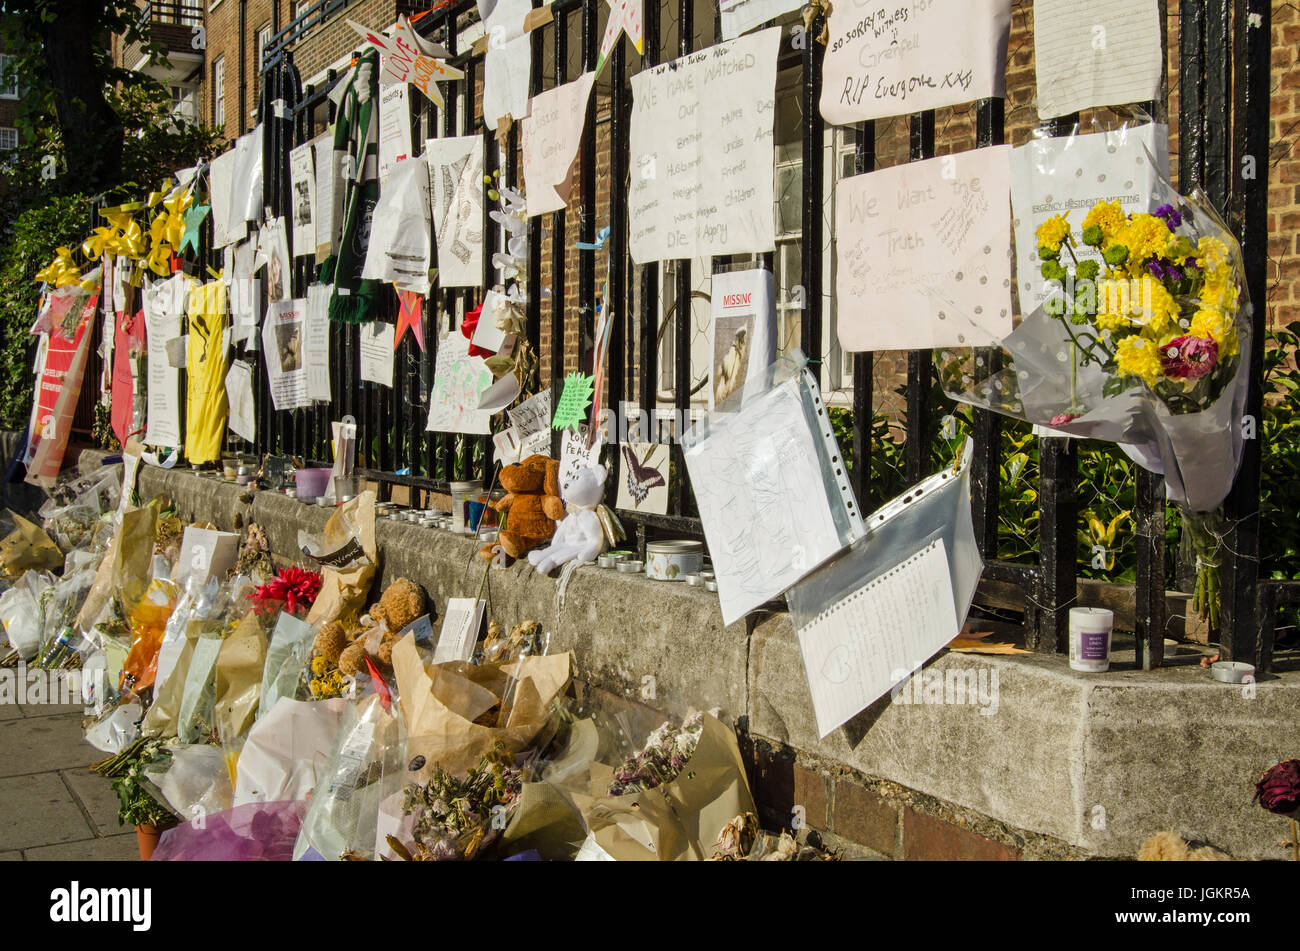 LONDON, UK - JULY 5, 2017: Railings close to Grenfell Tower covered in memorials to those killed and missing.  At - Stock Image